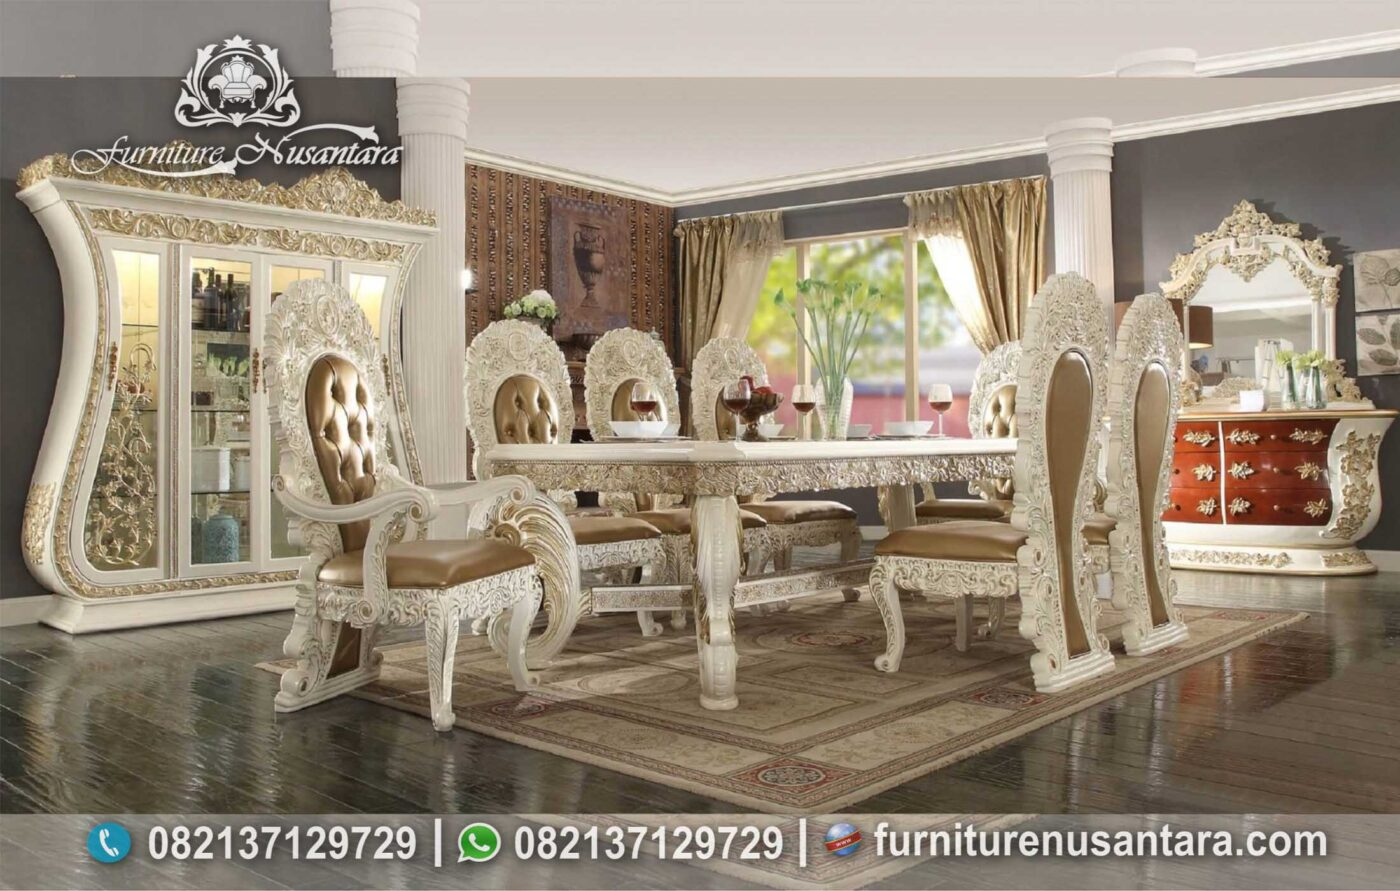 Jual Meja Makan Luxury Berkwalitas Tinggi MM-04, Furniture Nusantara